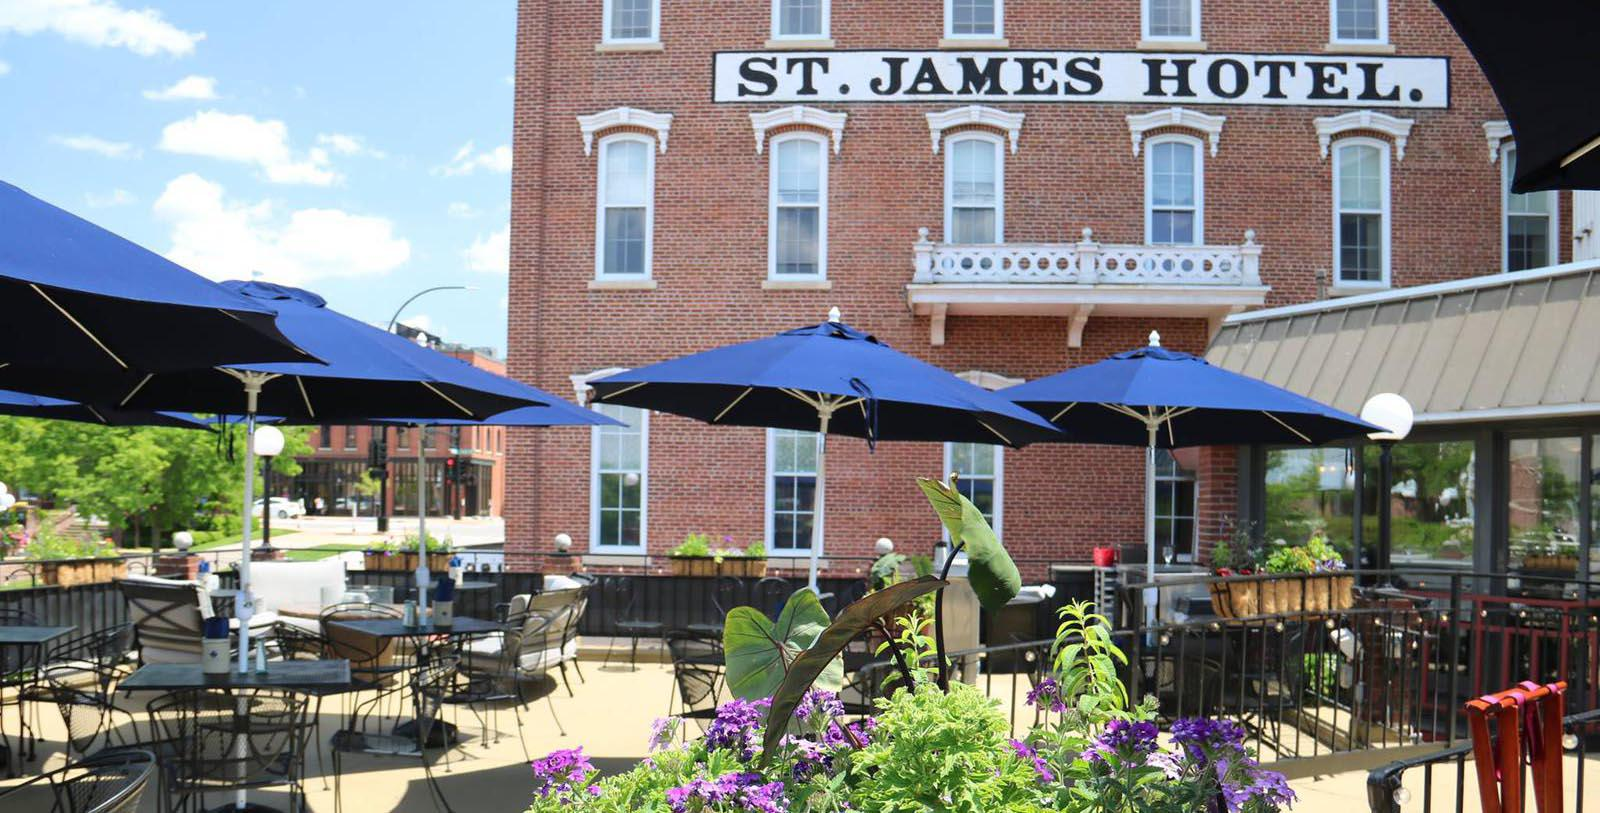 Image of Outdoor Dining Area St. James Hotel, 1875, Member of Historic Hotels of America, in Red Wing, Minnesota, Overview